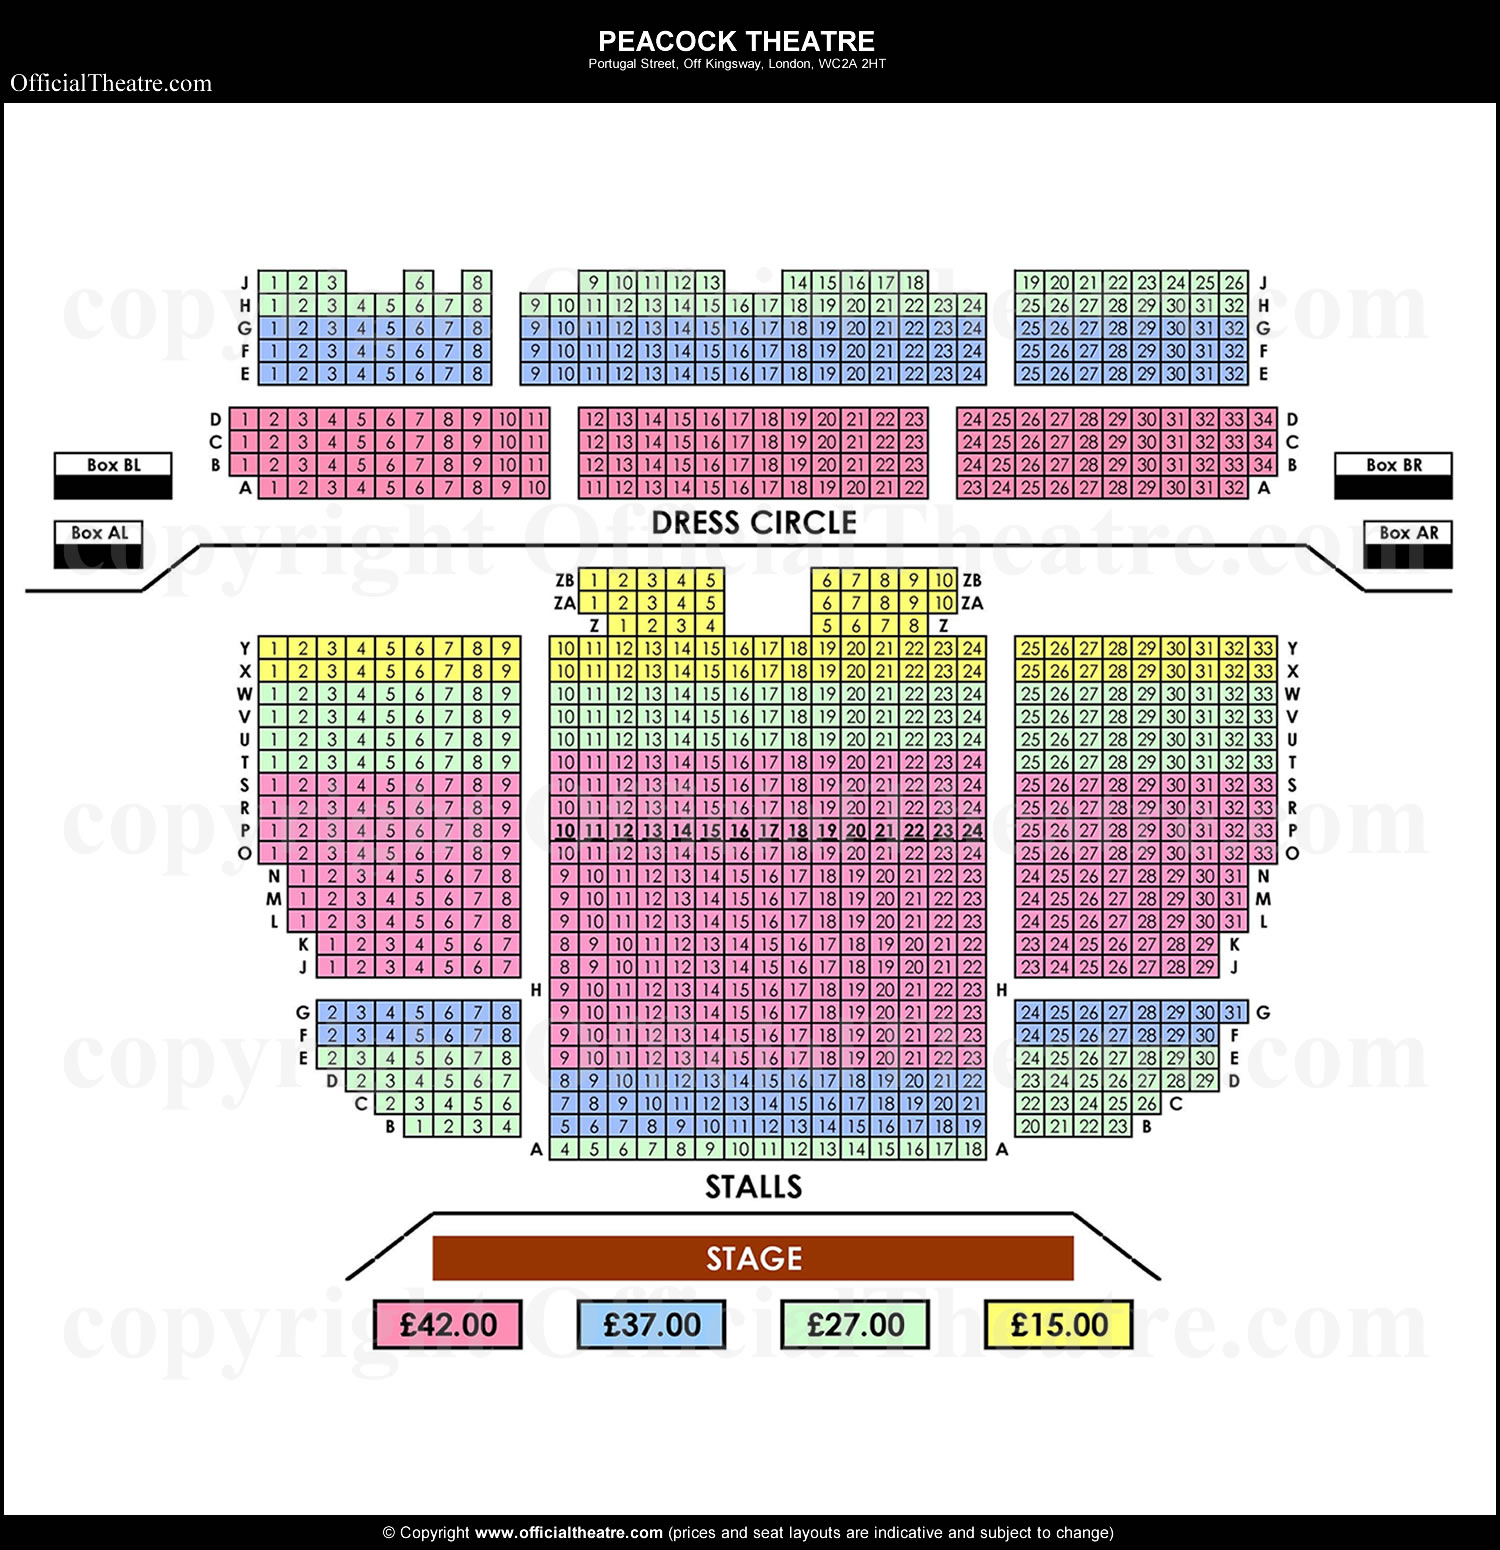 Peacock Theatre seat prices Tango Fire